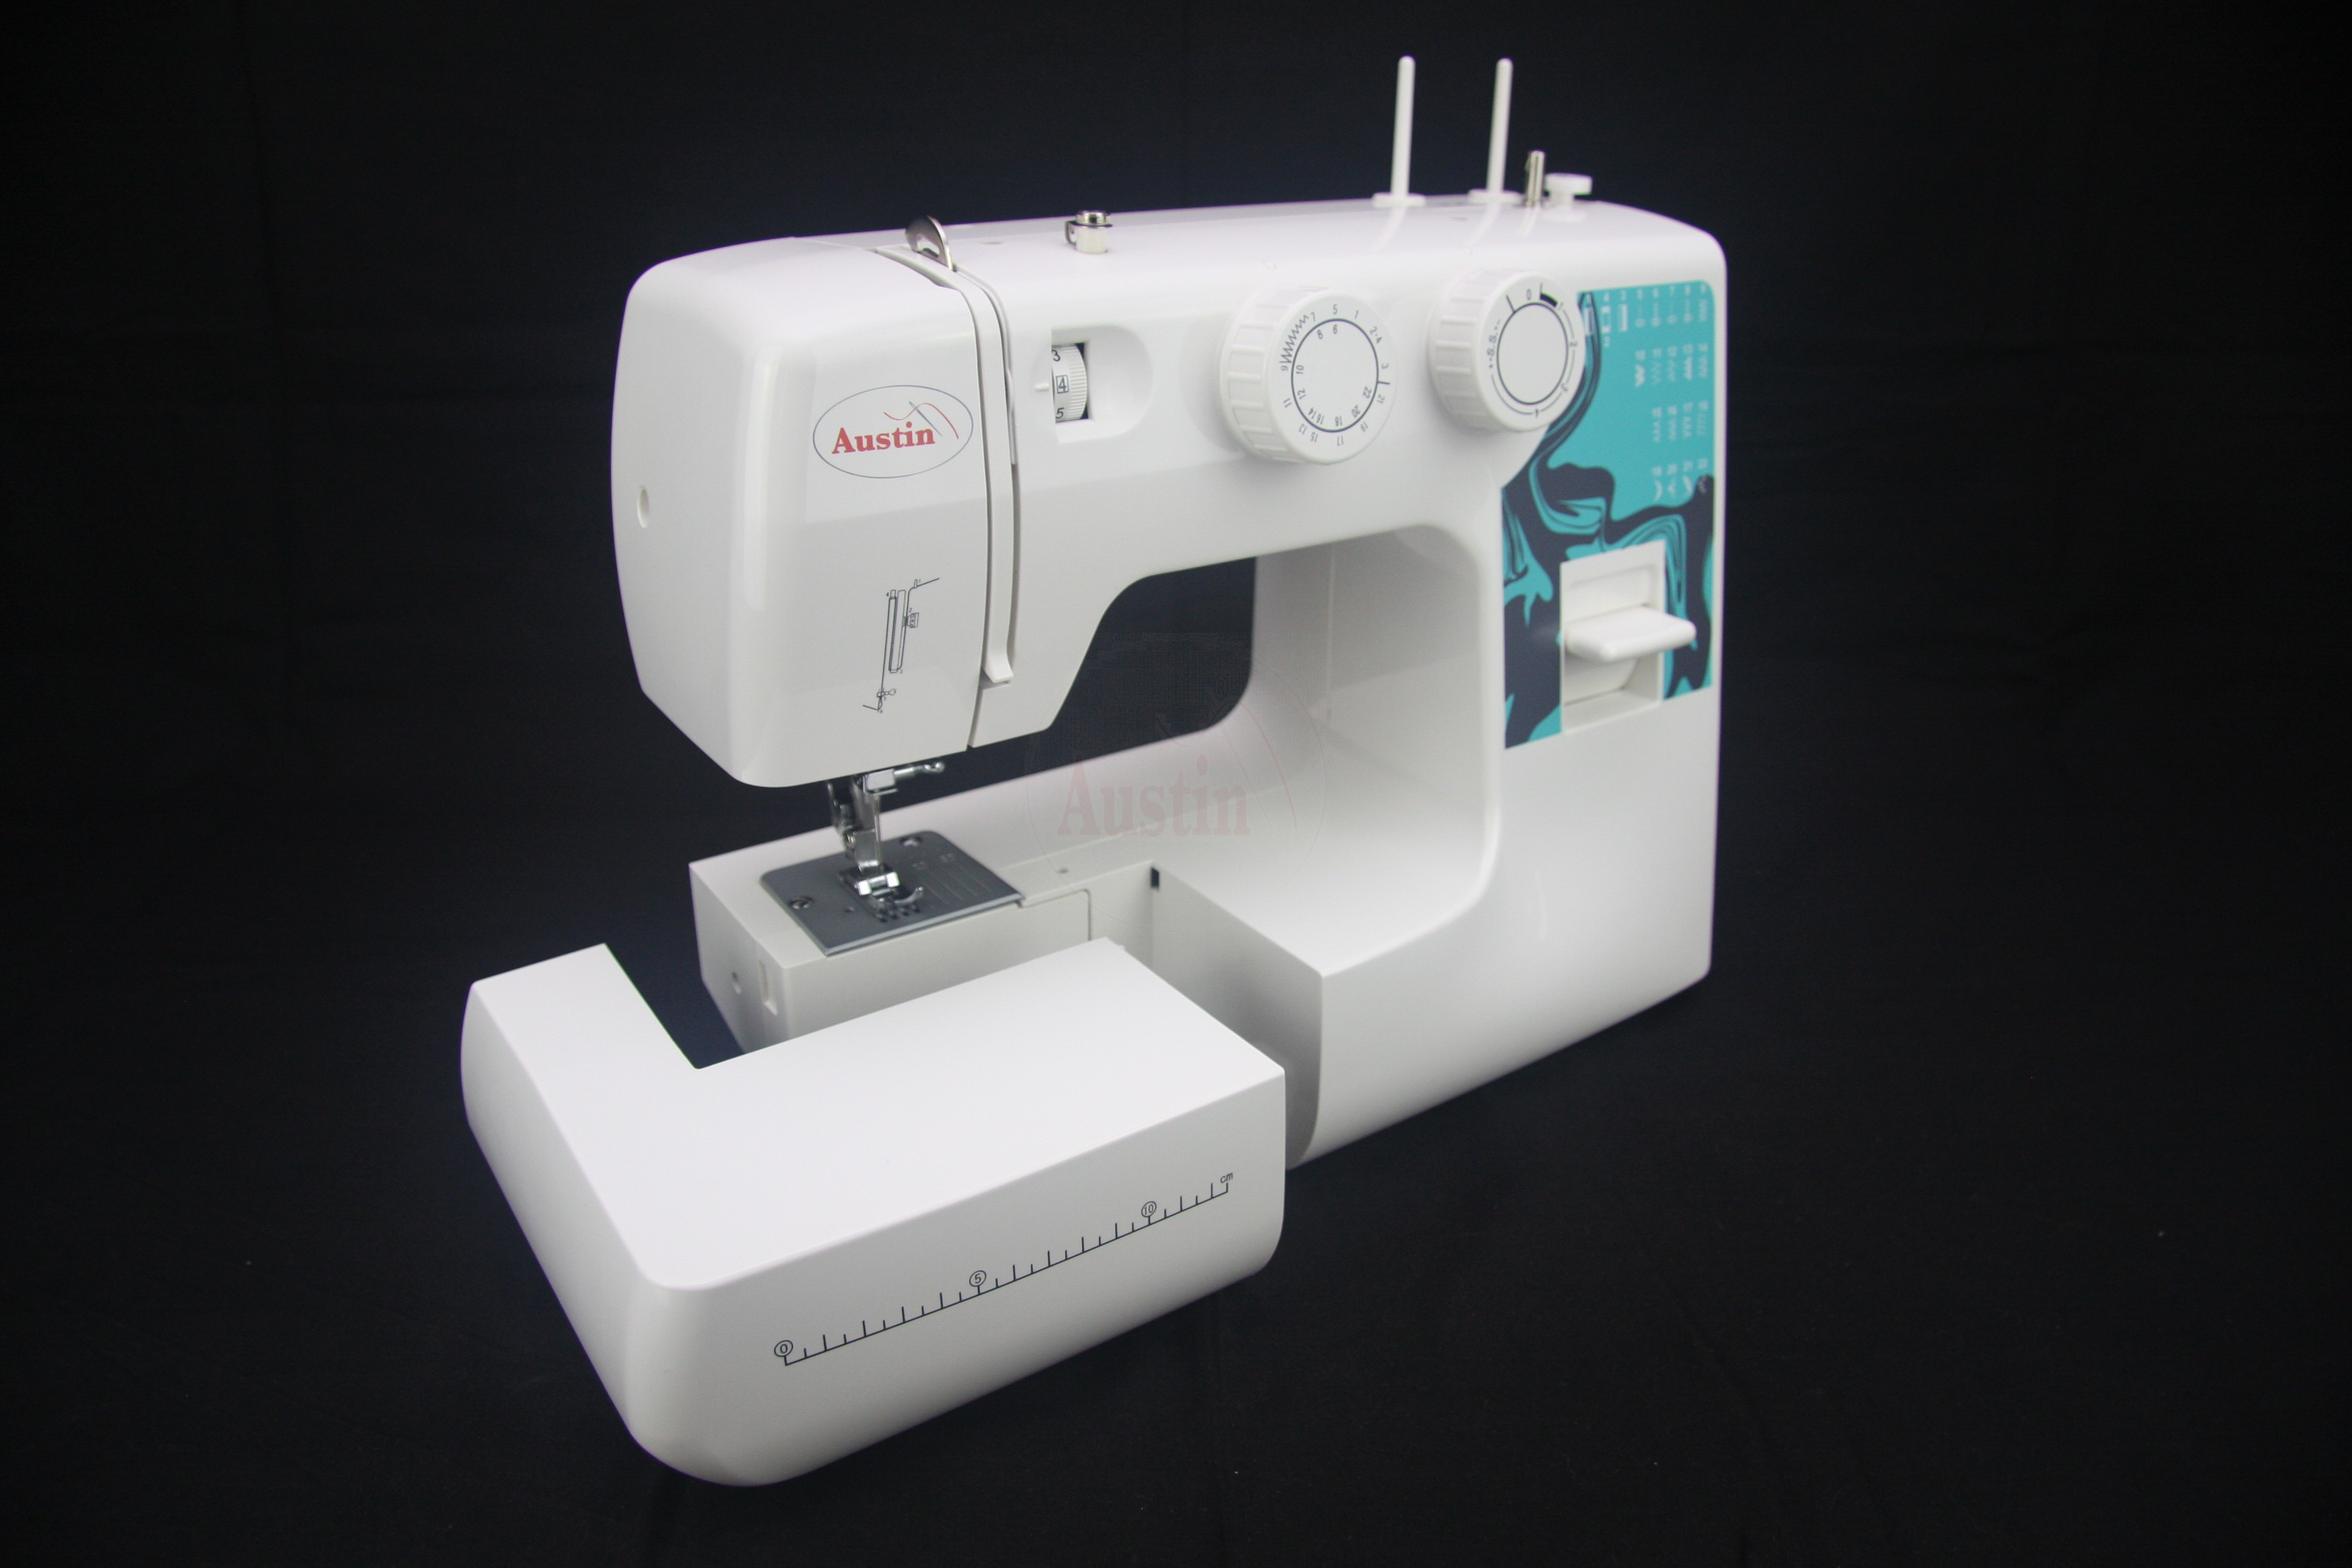 KP900L AUSTIN SEWING MACHINE